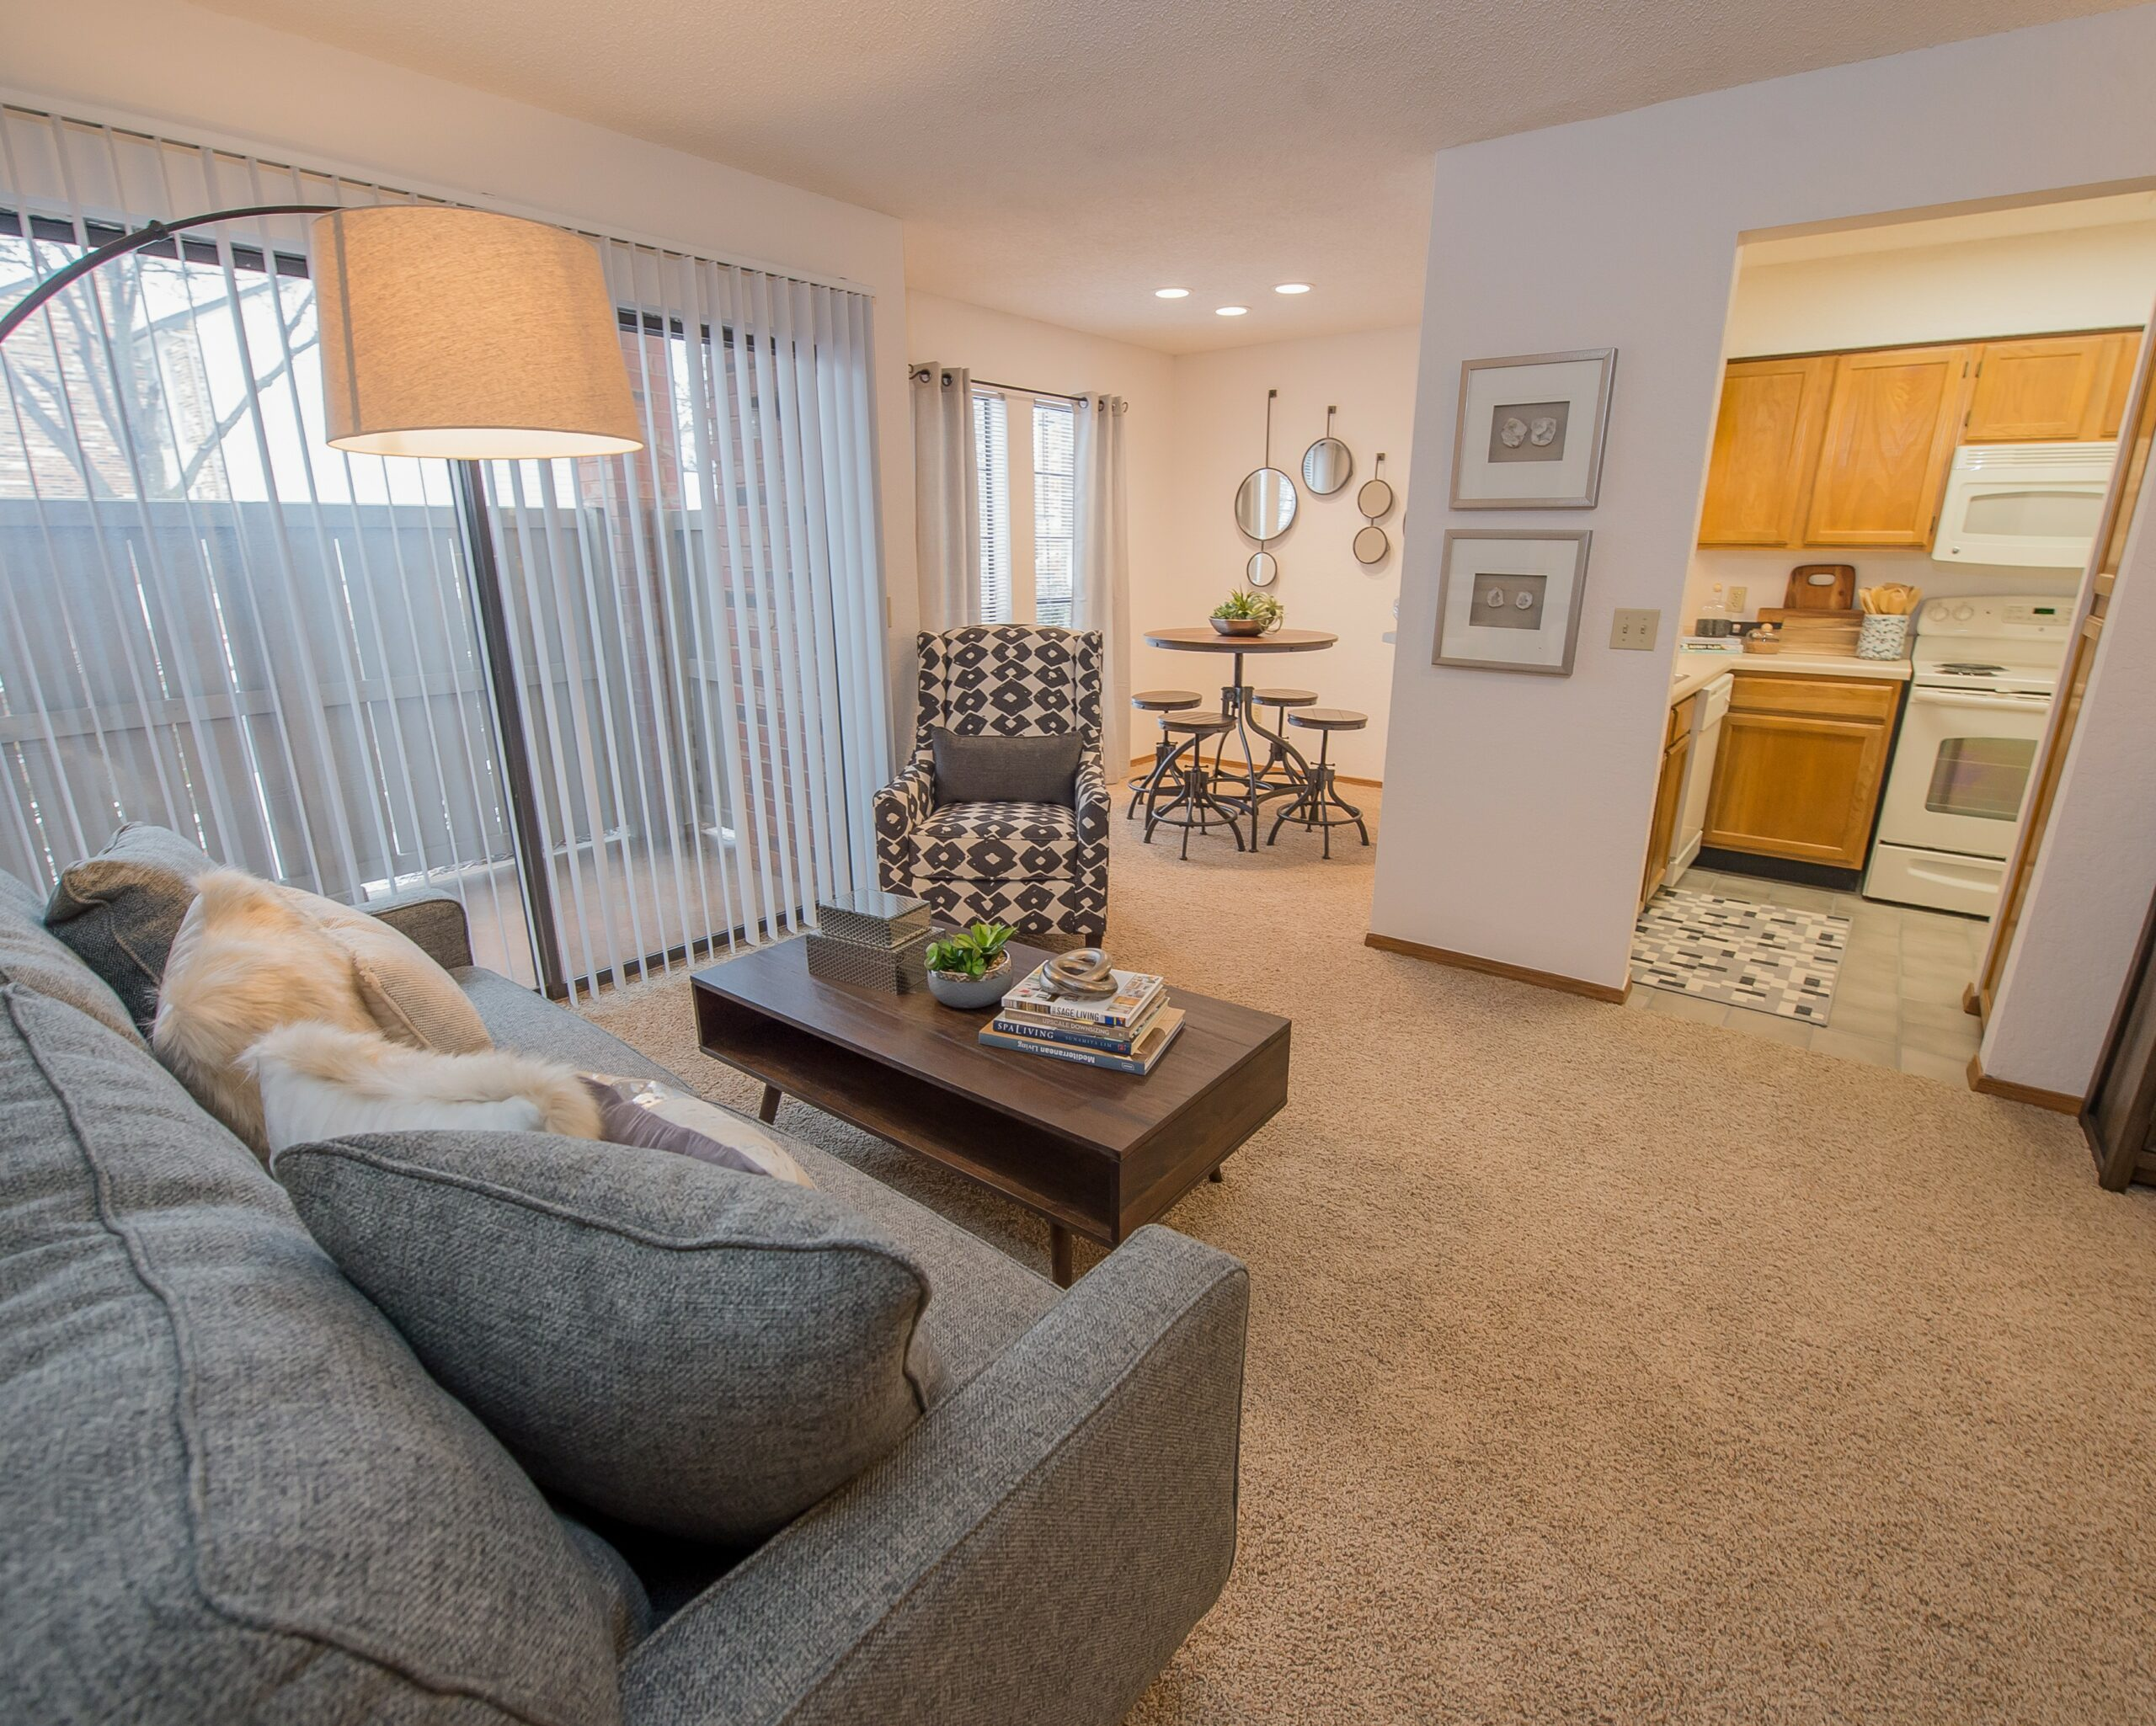 craigslist okc houses for rent by owner